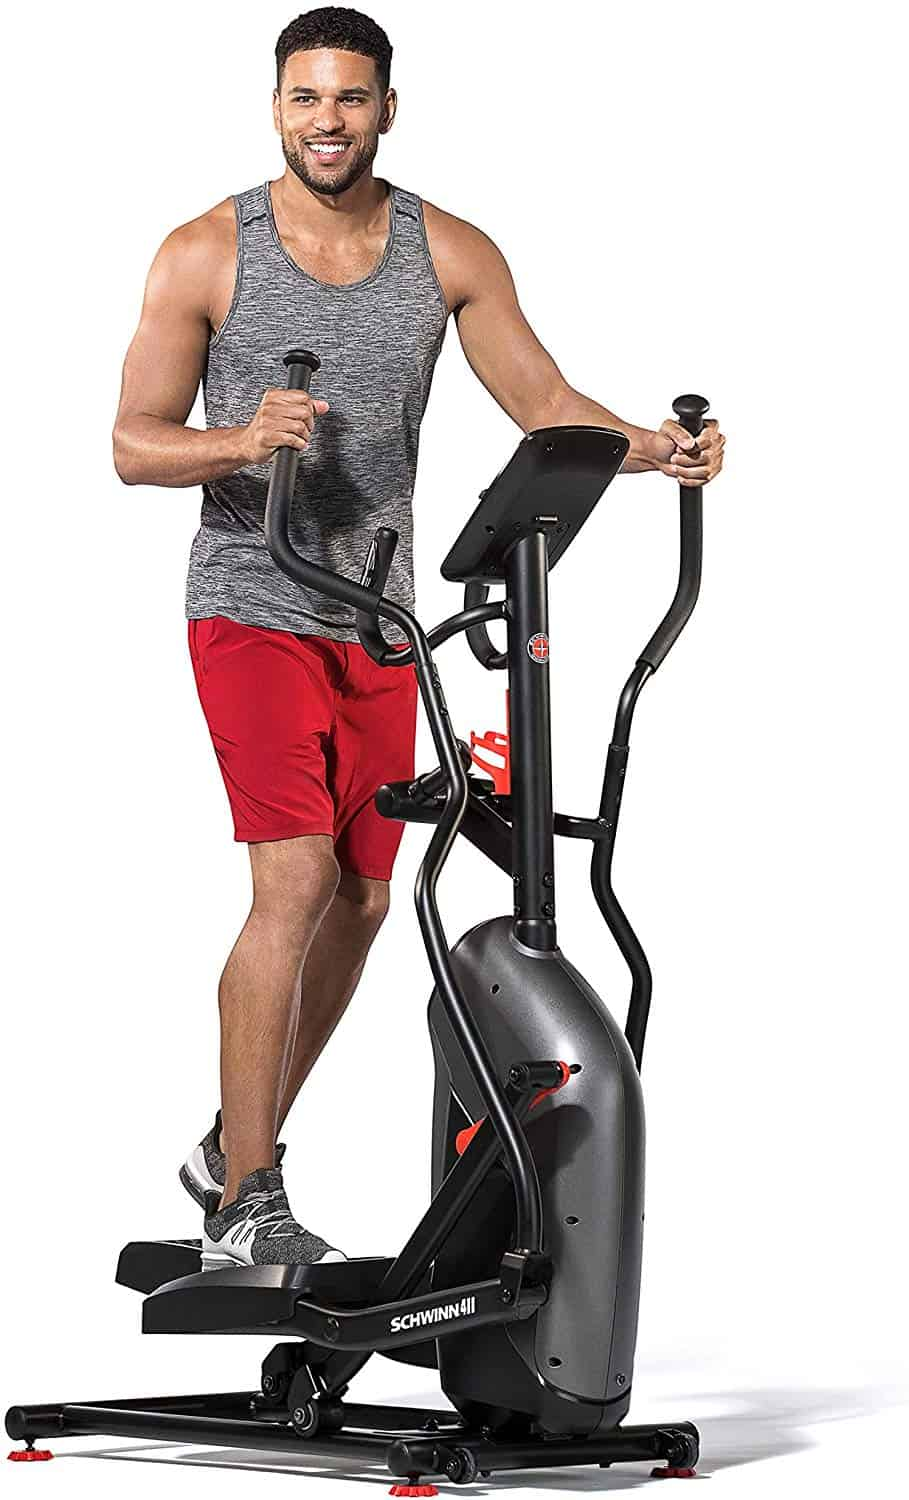 A man is exercising with the Schwinn 411 Compact Elliptical